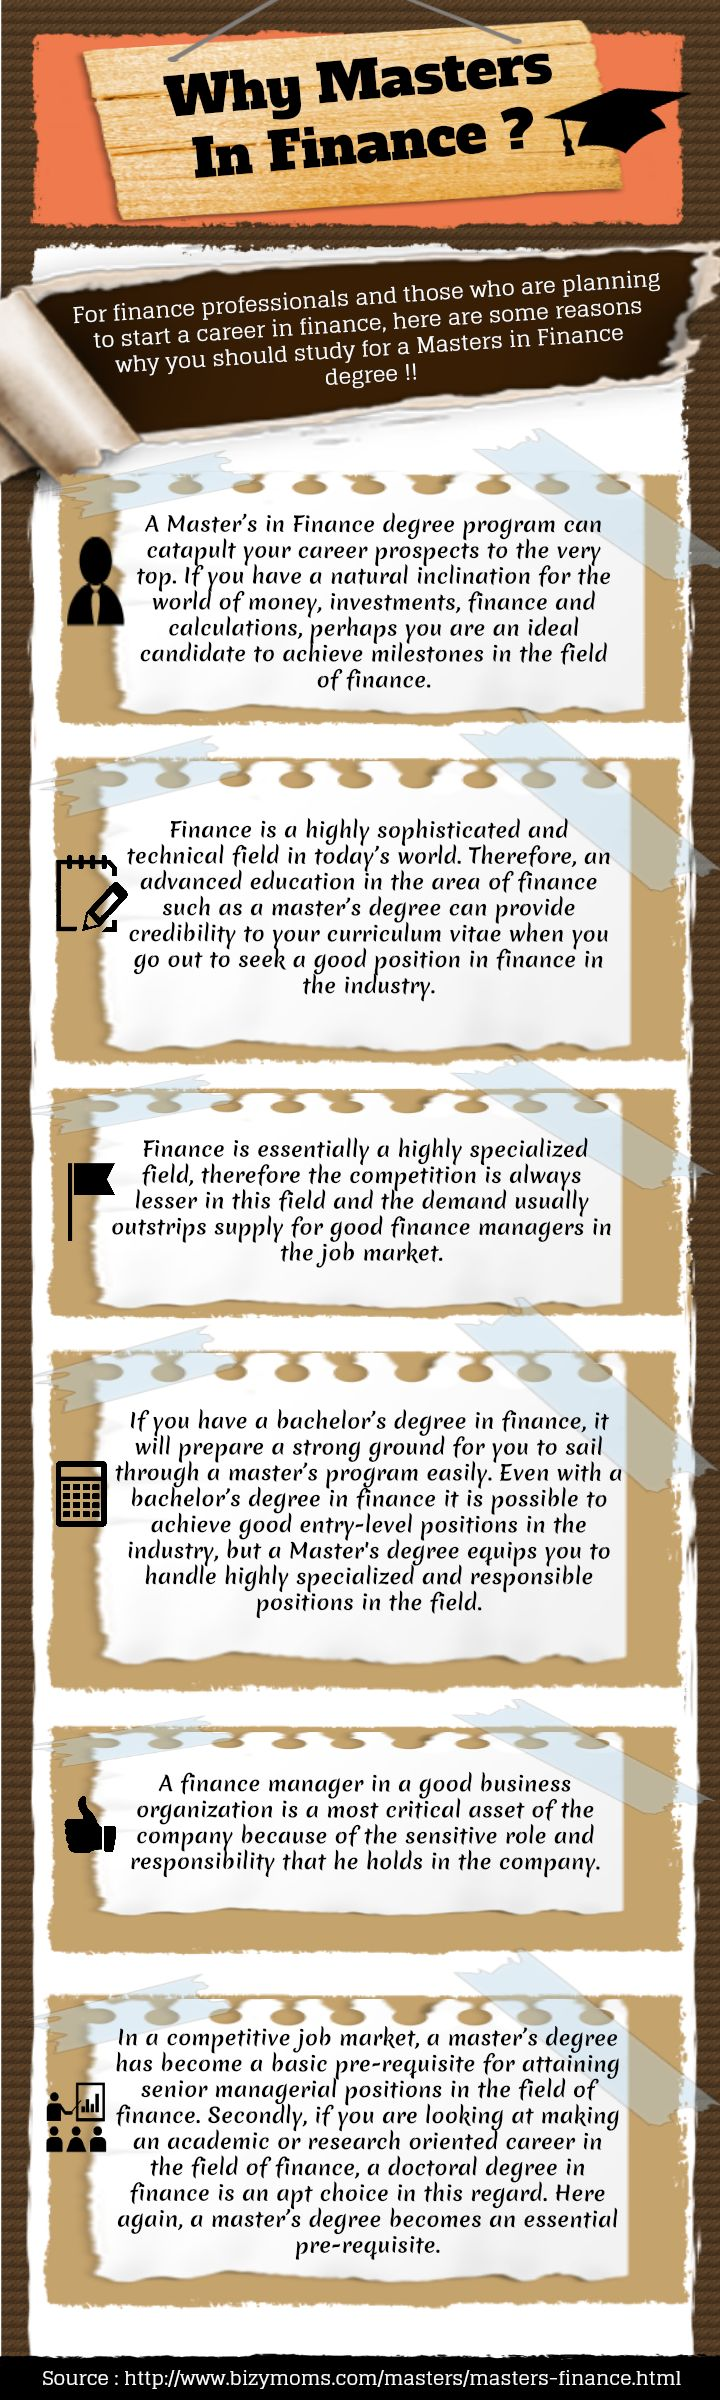 17 best images about accountants cpas and financial planners on why masters in finance